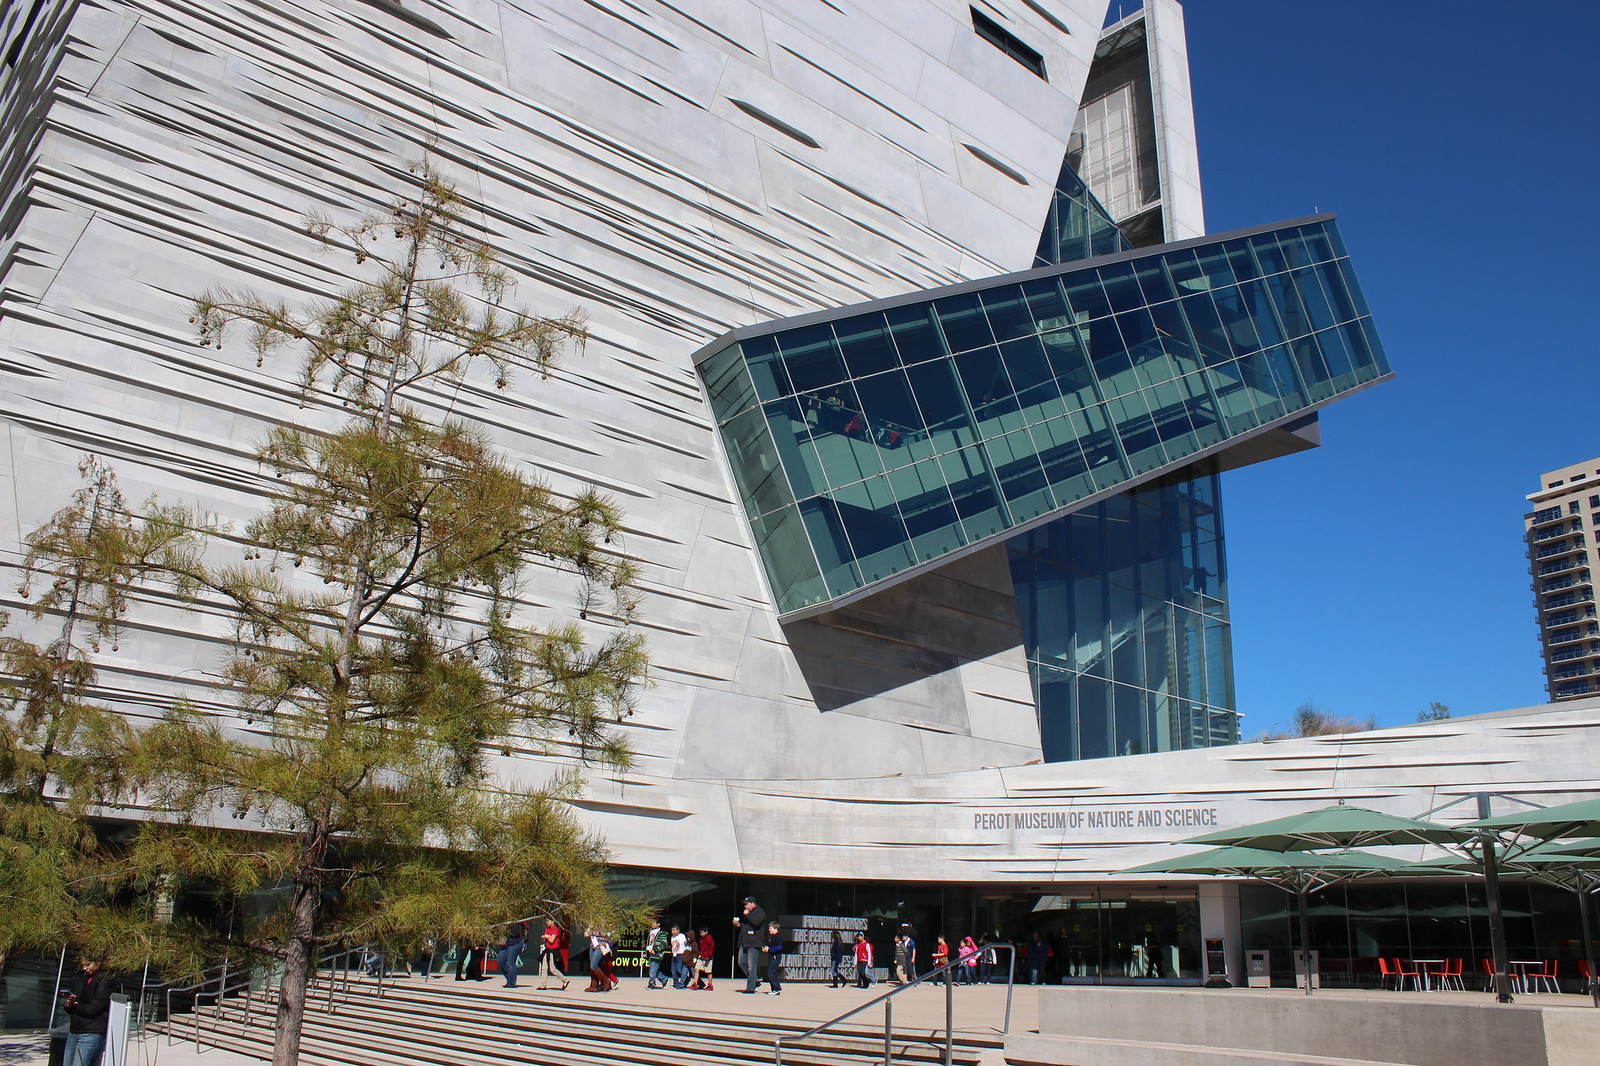 Perot Museum - Catherine Cuellar: The Dallas Art Scene